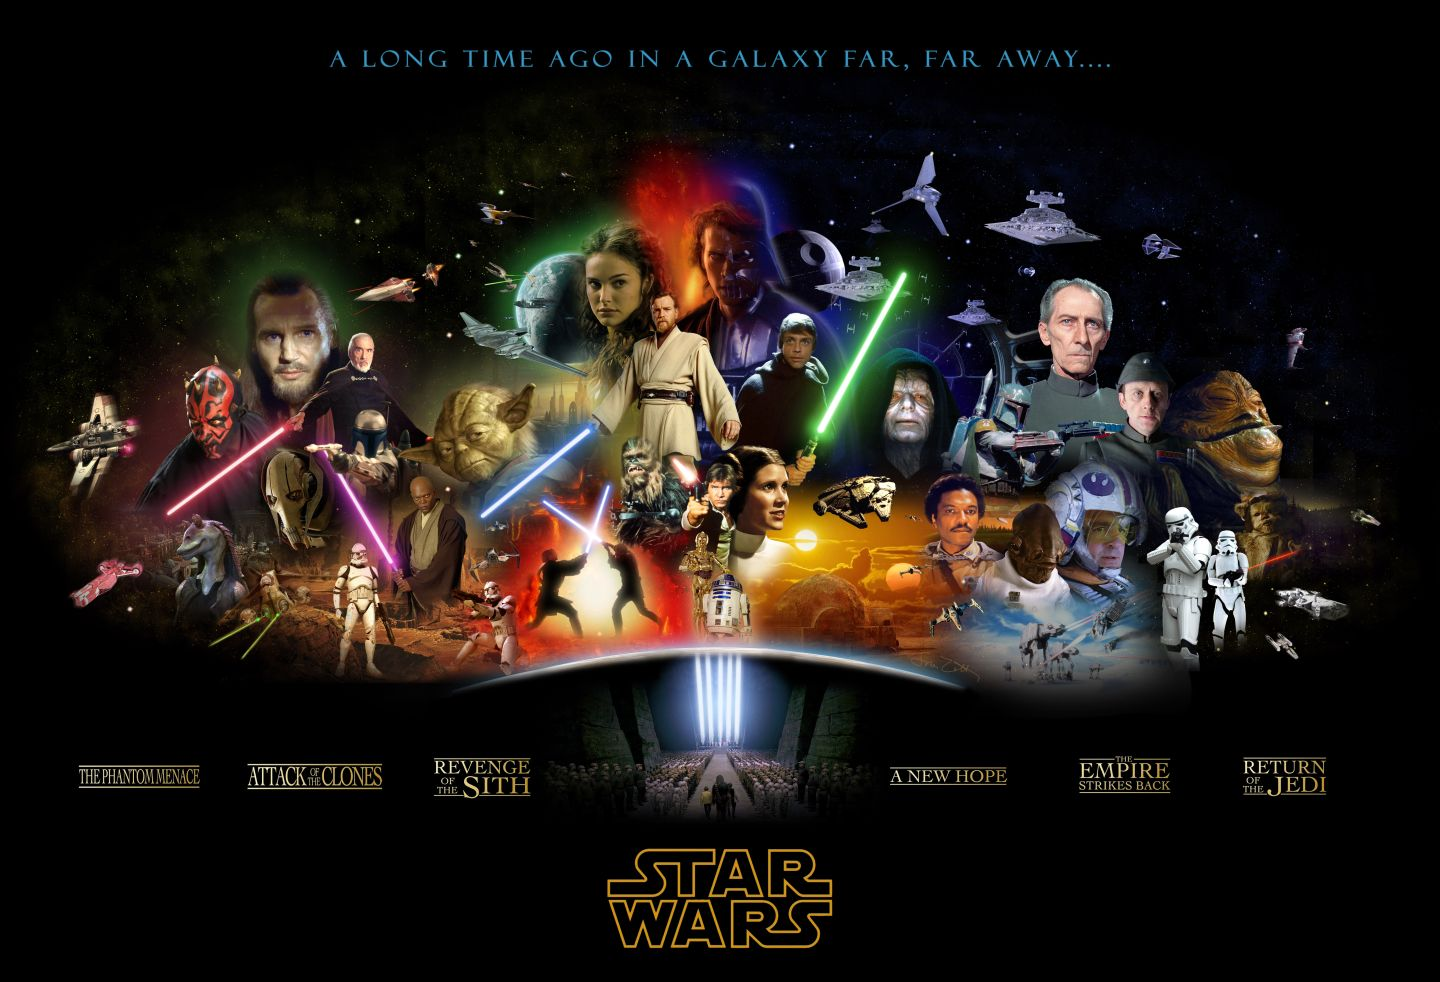 The Ultimate Star Wars Poster